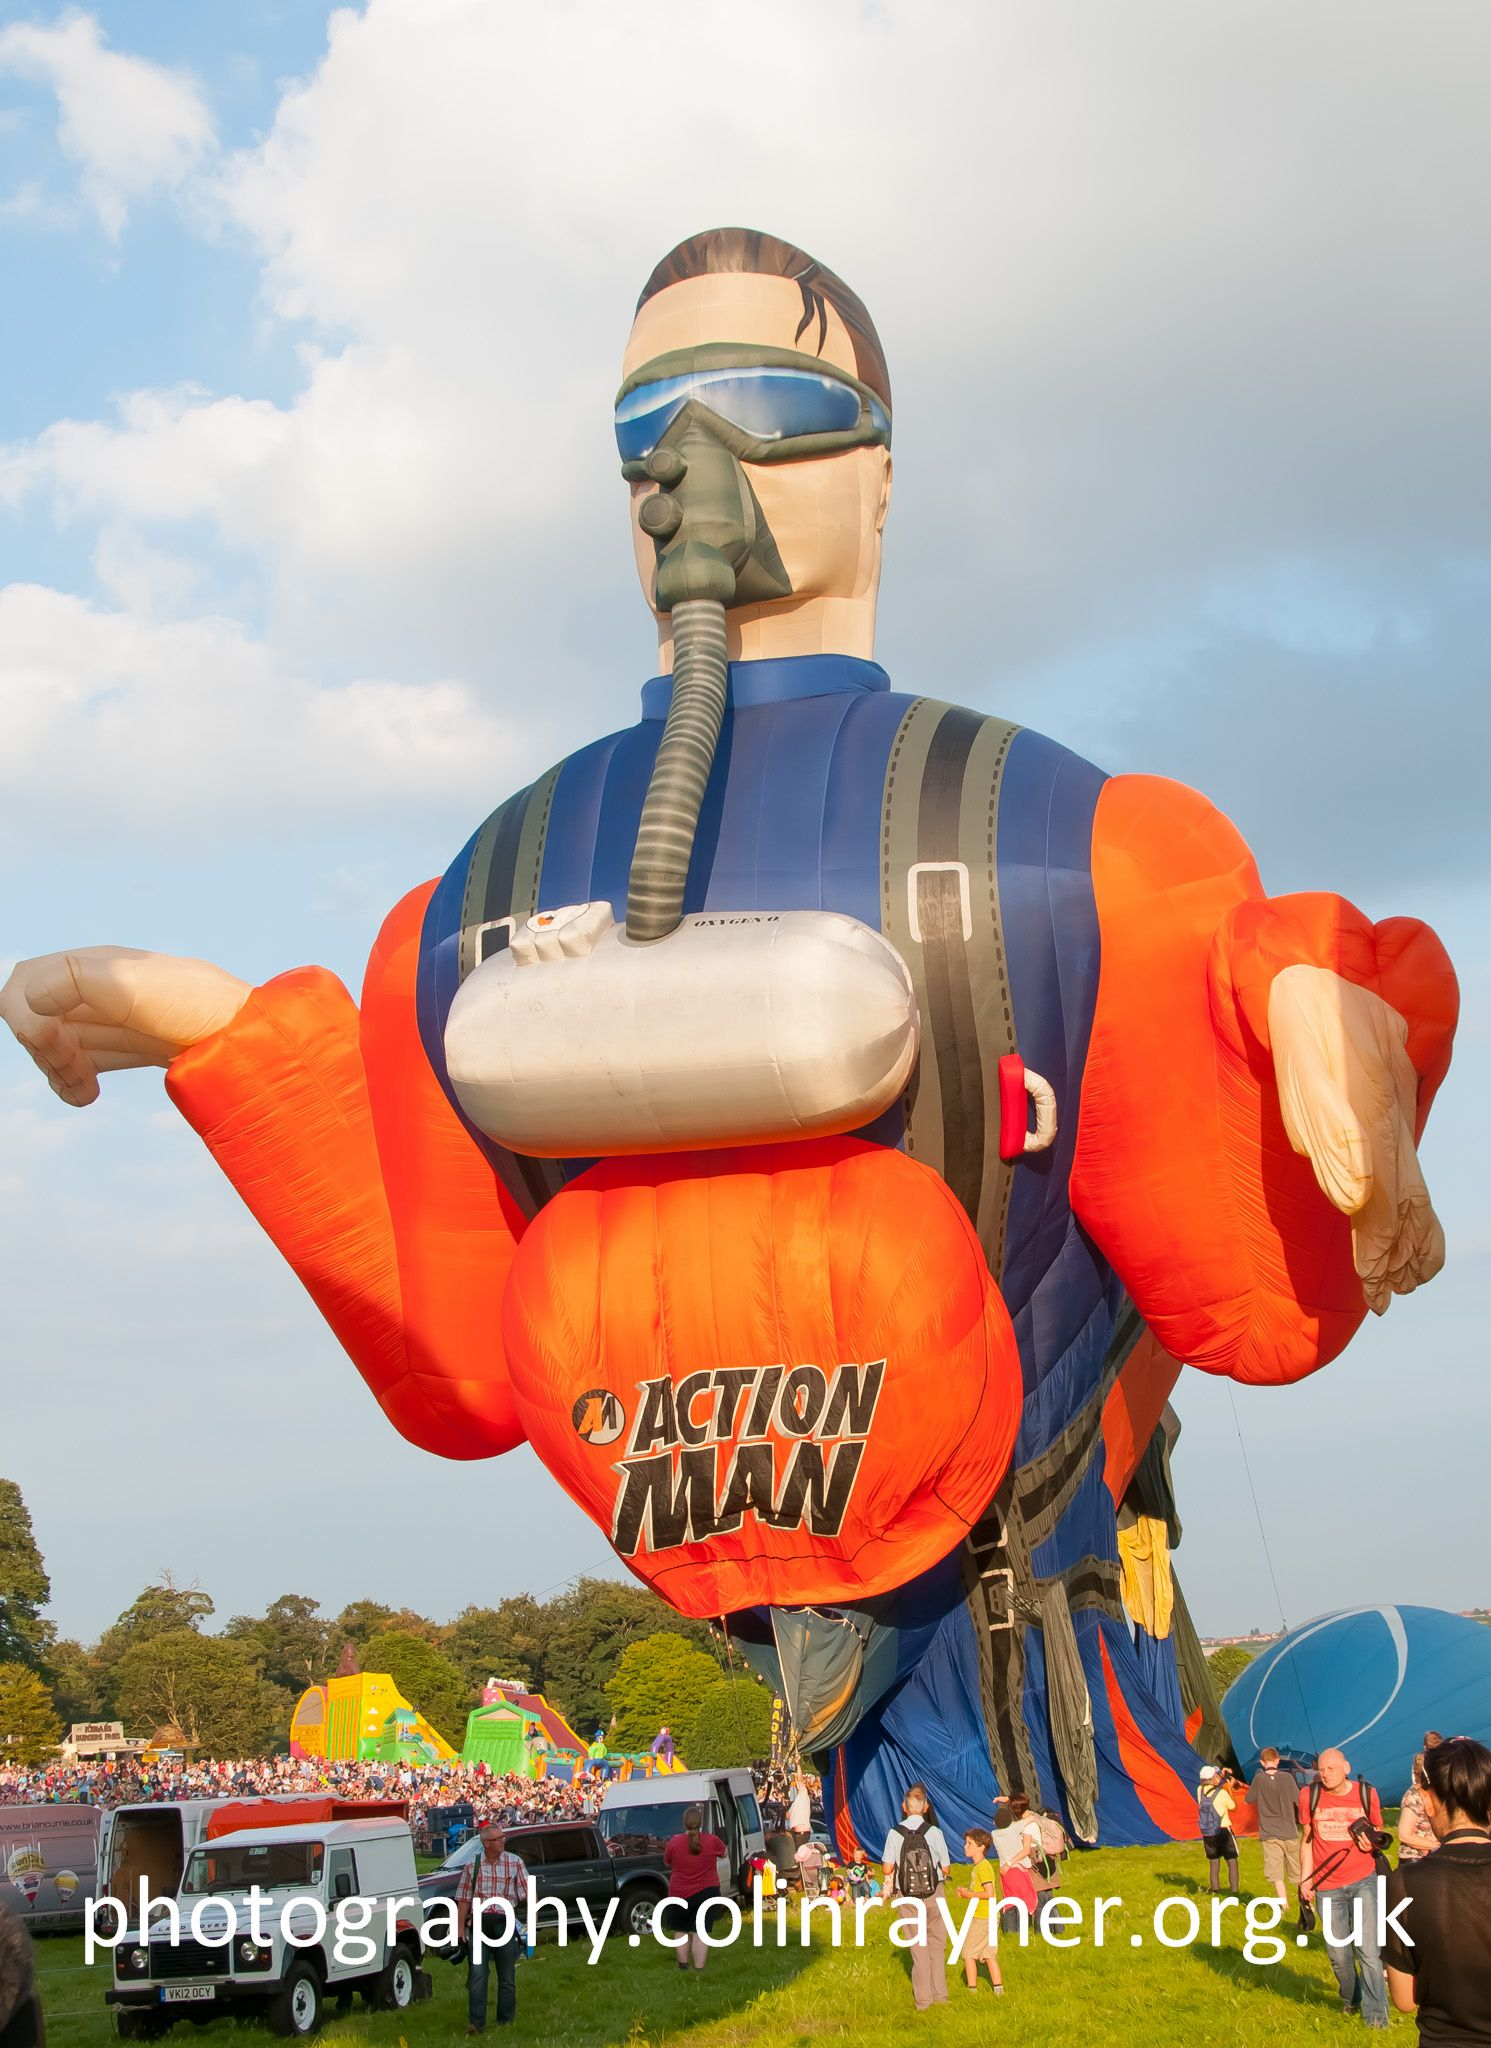 Action Man Hot Air Balloon at Bristol Balloon Fiesta